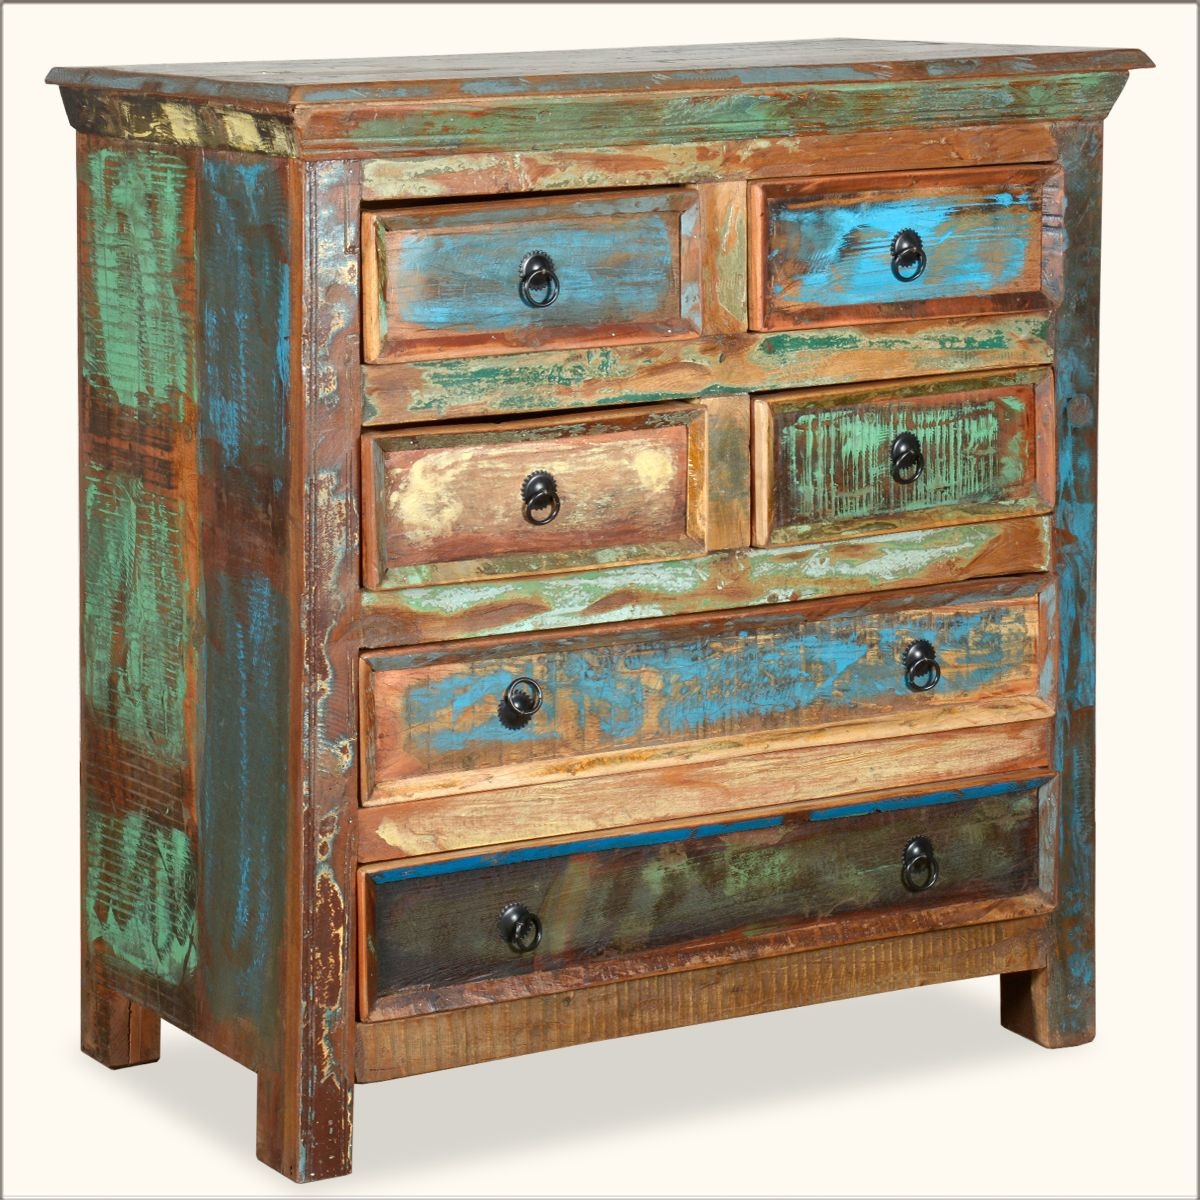 Decorating With Distressed Furniture: Appalachian Rustic Painted Old Wood 6 Drawer Bedroom